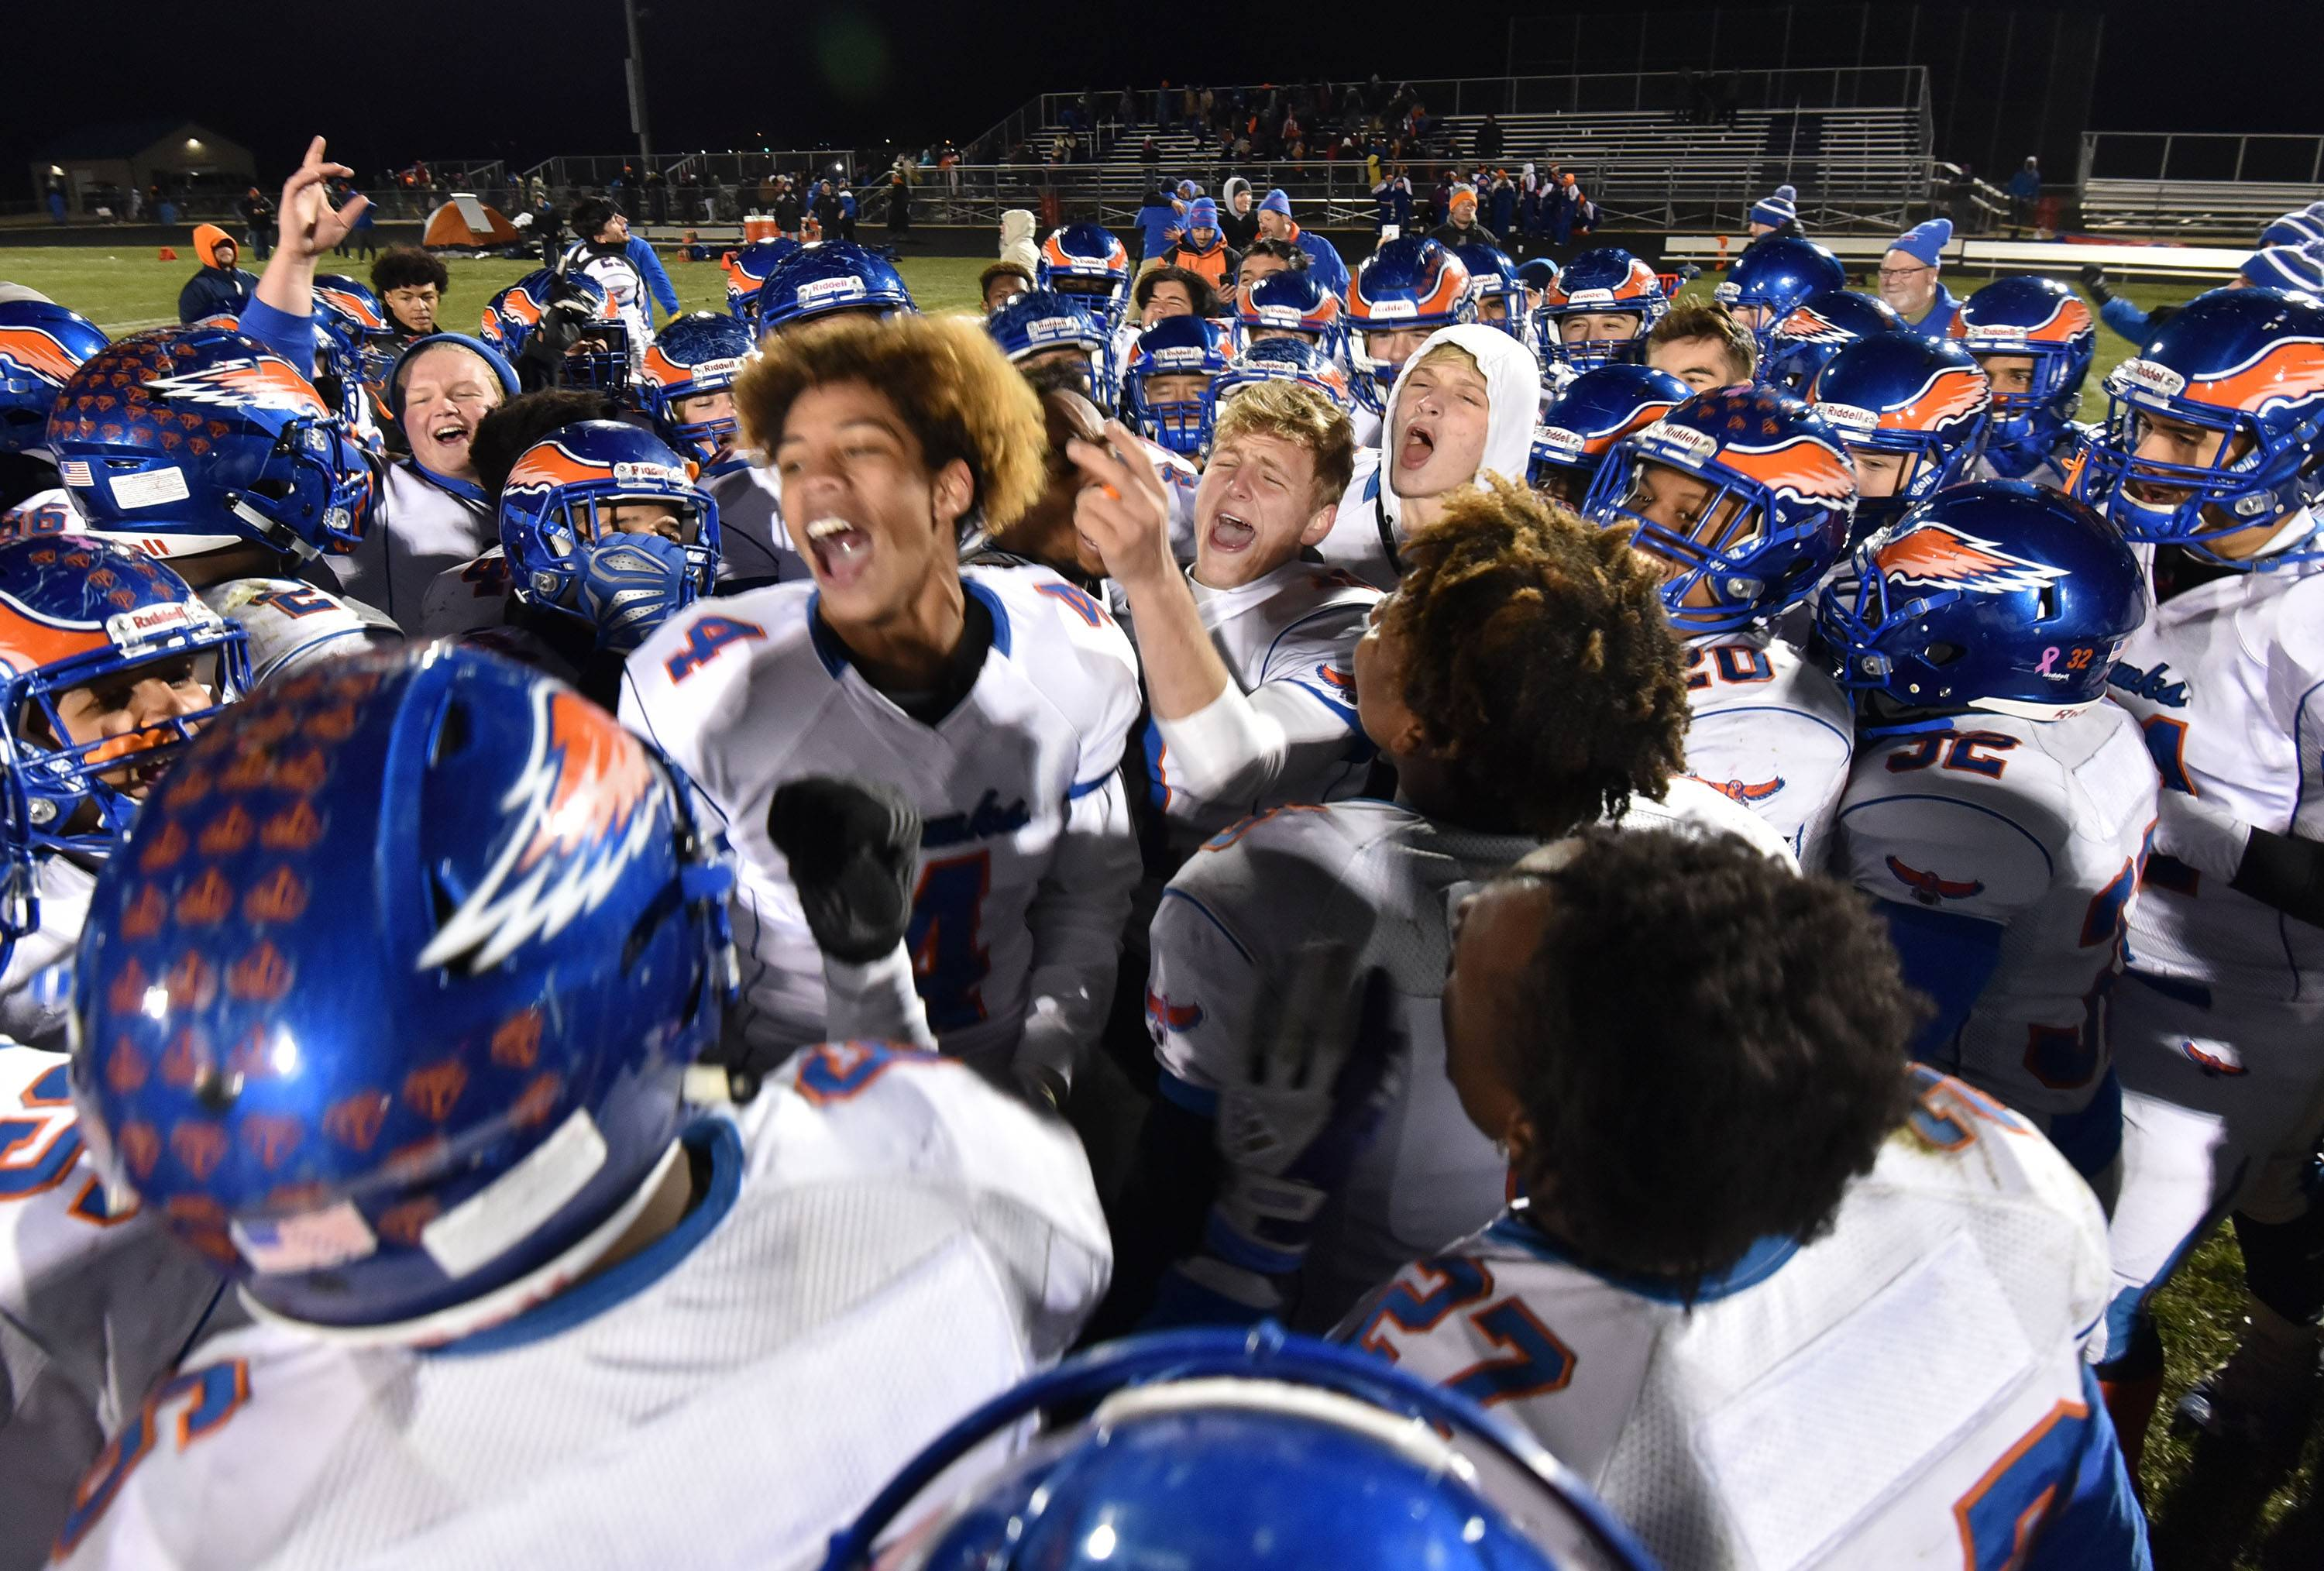 The winning continues for state semifinalist Hoffman Estates